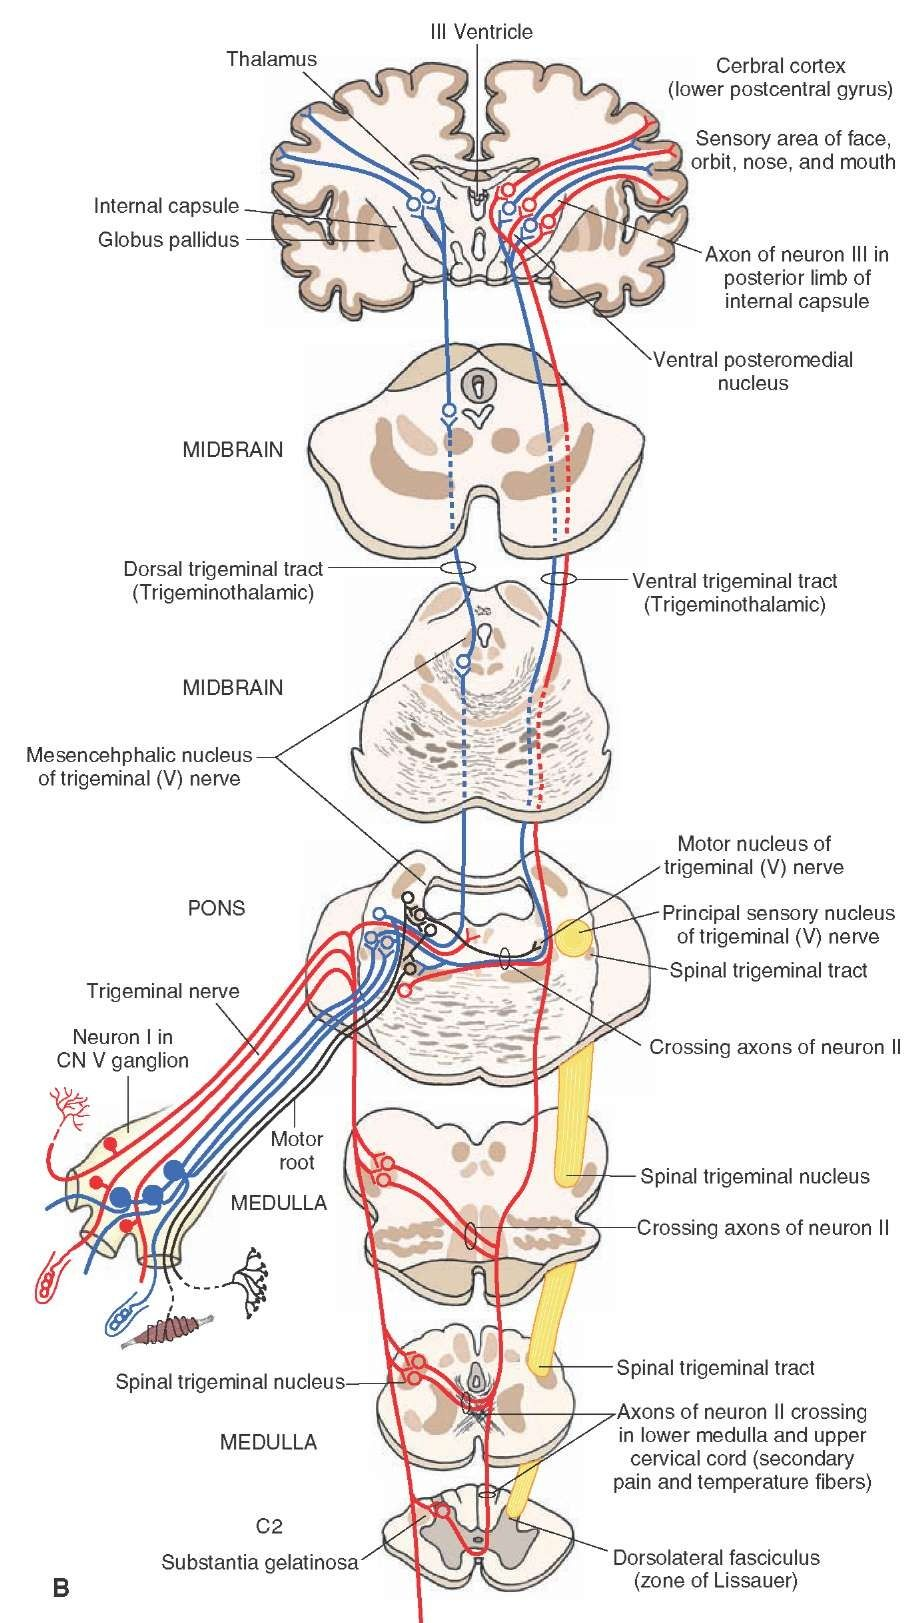 the cranial nerves organization of the central nervous system part 3 [ 907 x 1623 Pixel ]